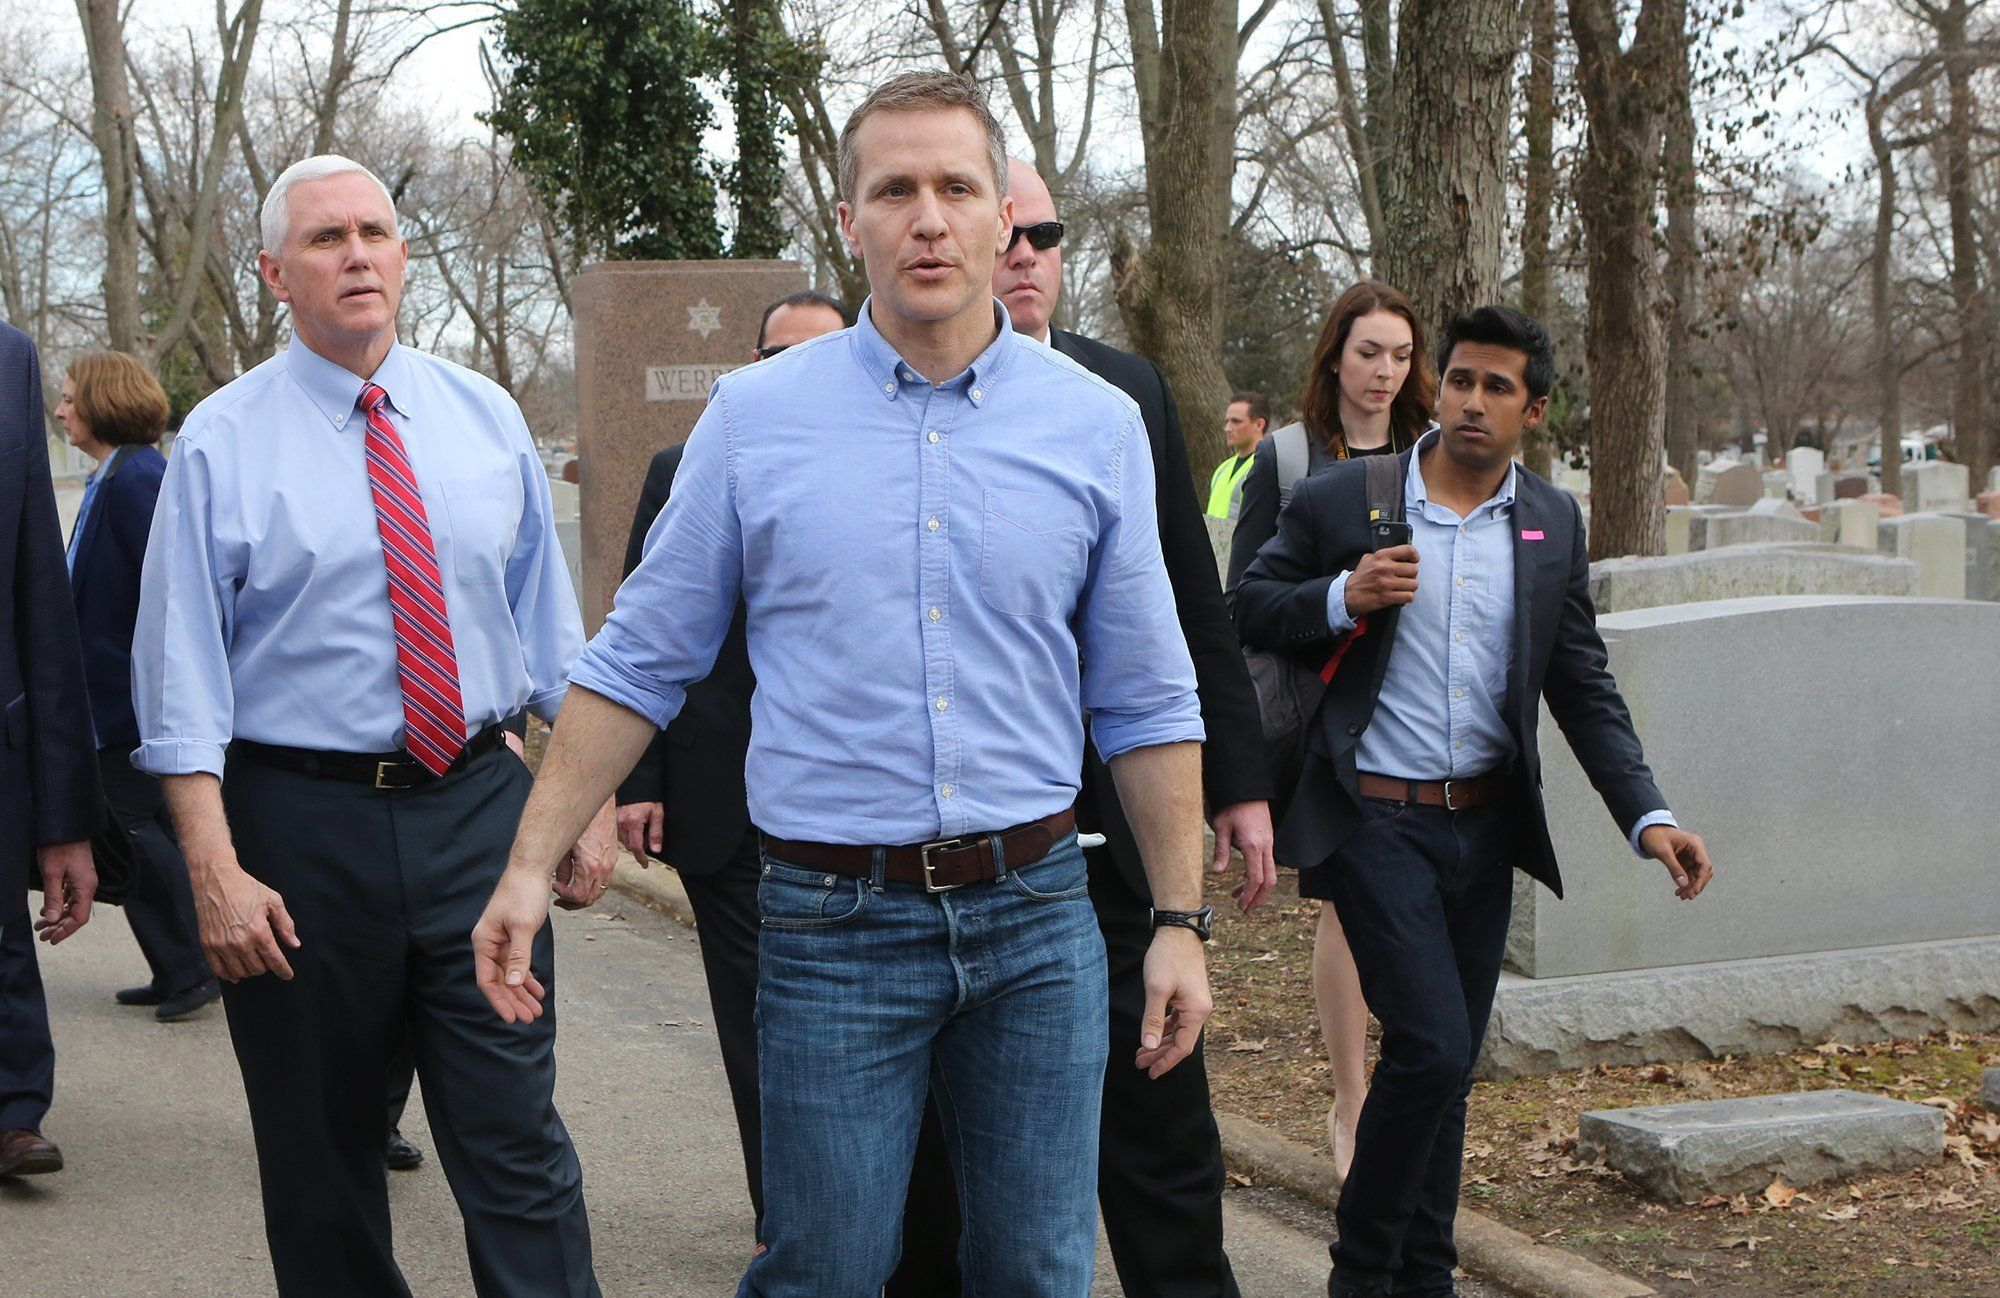 Vice President Mike Pence and Missouri Gov. Eric Greitens walk through the Chesed Shel Emeth Cemetery in University City, Mo., on Wednesday, Feb. 22, 2017, after viewing some of the damage done last weekend when more than 150 headstones were overturned. (J.B. Forbes/St. Louis Post-Dispatch/TNS via Getty Images)